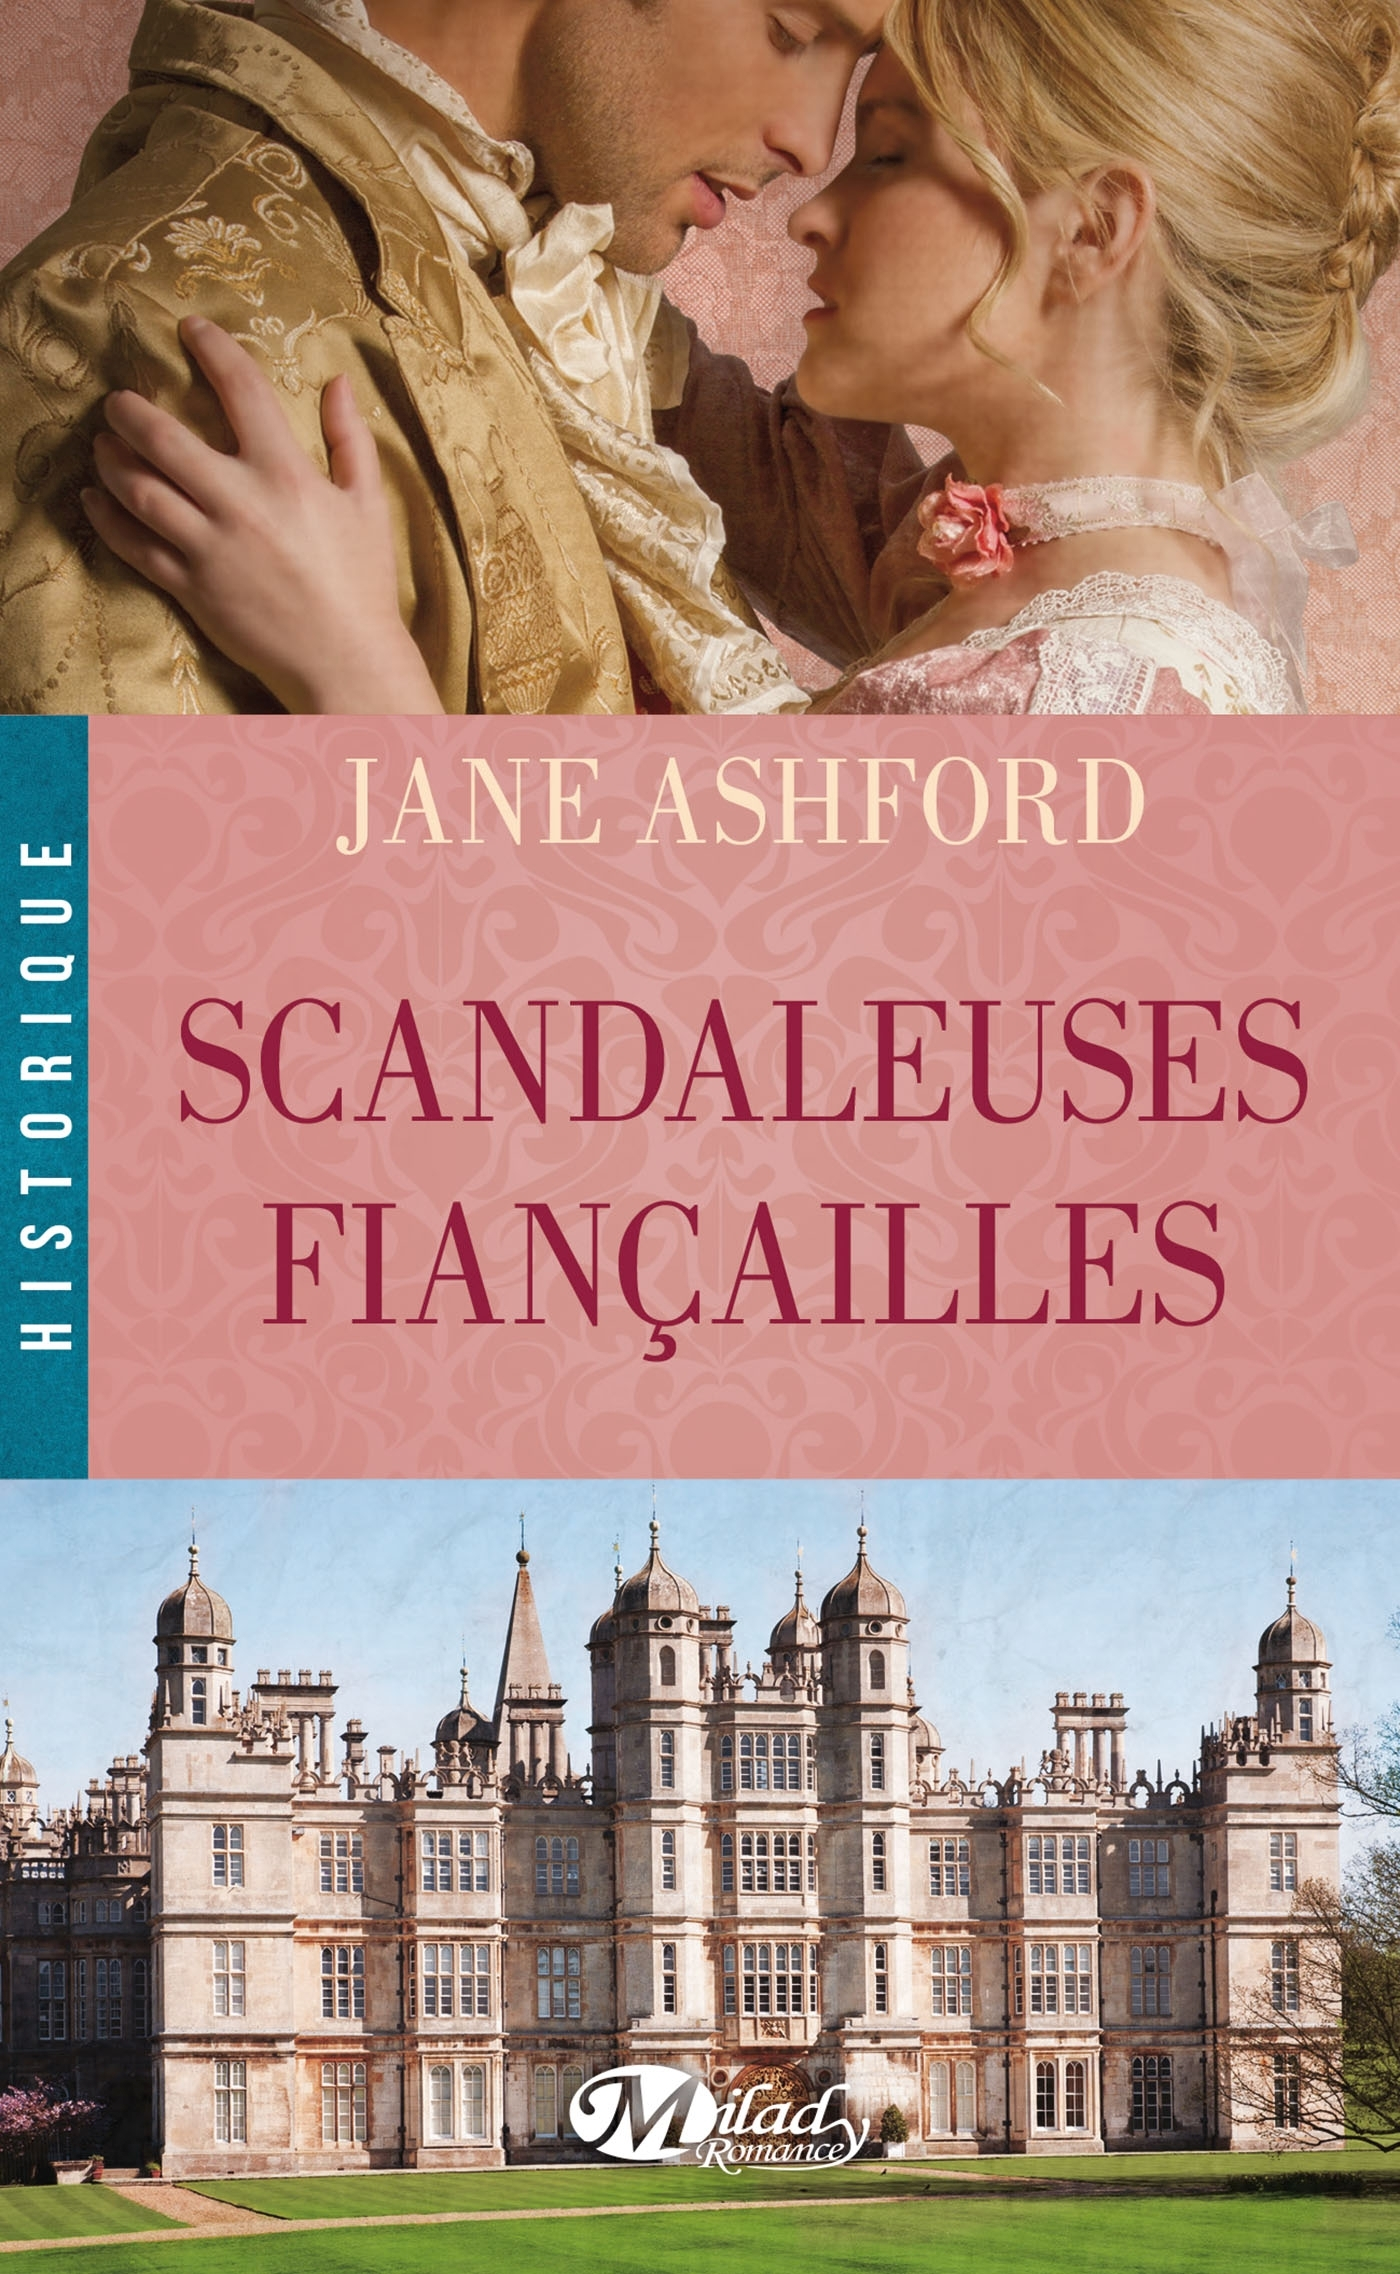 SCANDALEUSES FIANCAILLES